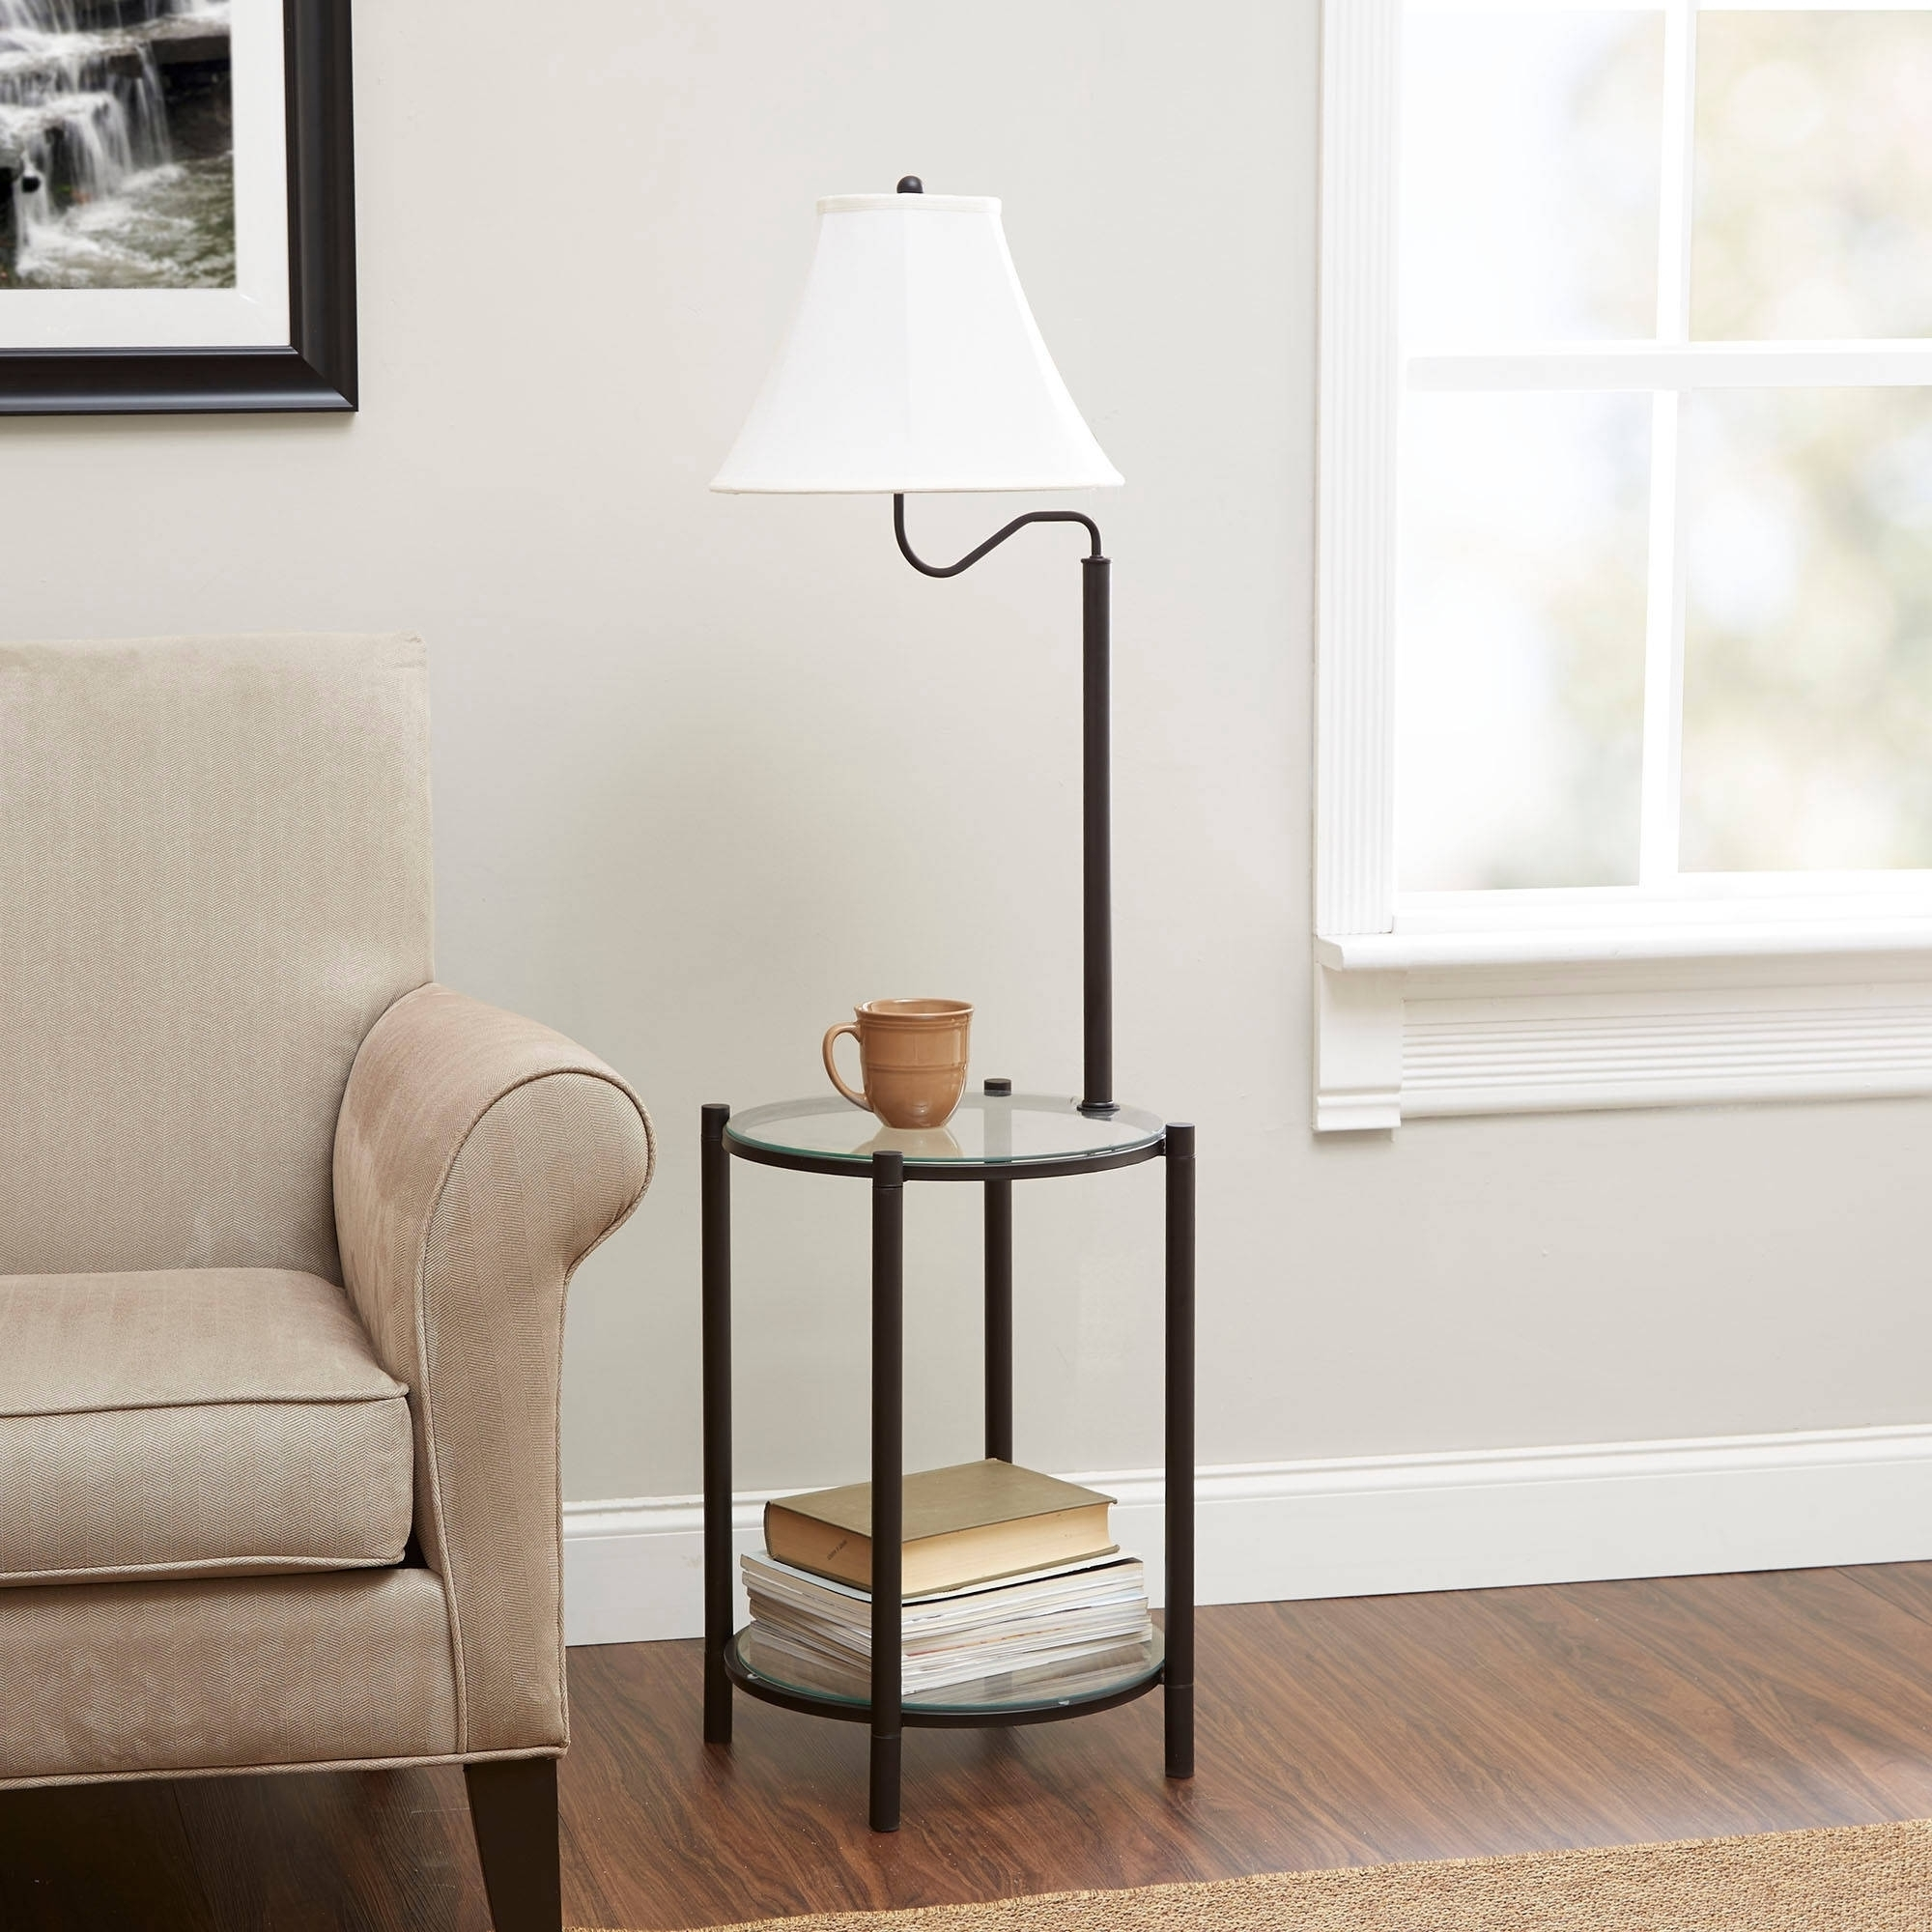 Recent Top 65 Terrific Led Light Bulbs Walmart Bedside Table Lamps For With Regard To Walmart Living Room Table Lamps (View 10 of 15)